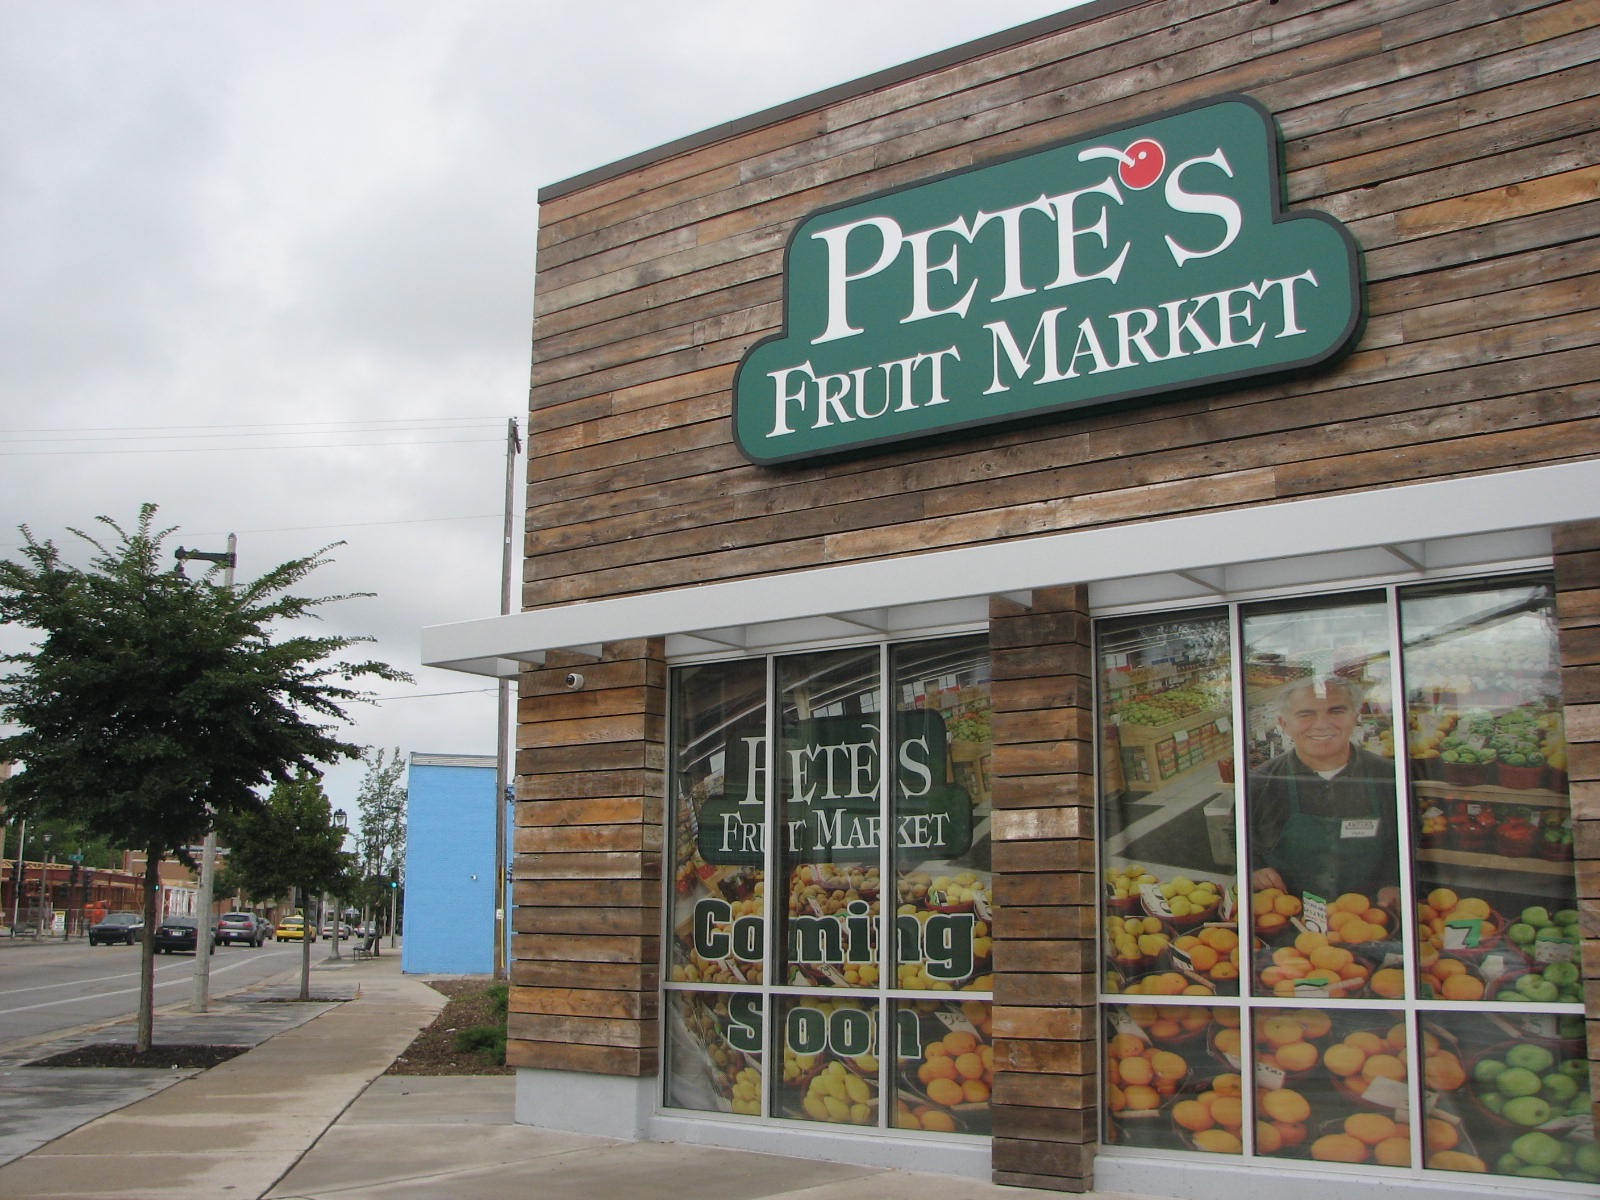 Pete's Fresh Fruit Market, on the corner of North Martin Luther King Drive and West North Avenue, is opening in Bronzeville on Sept. 14. Photo by Lydia Slattery.